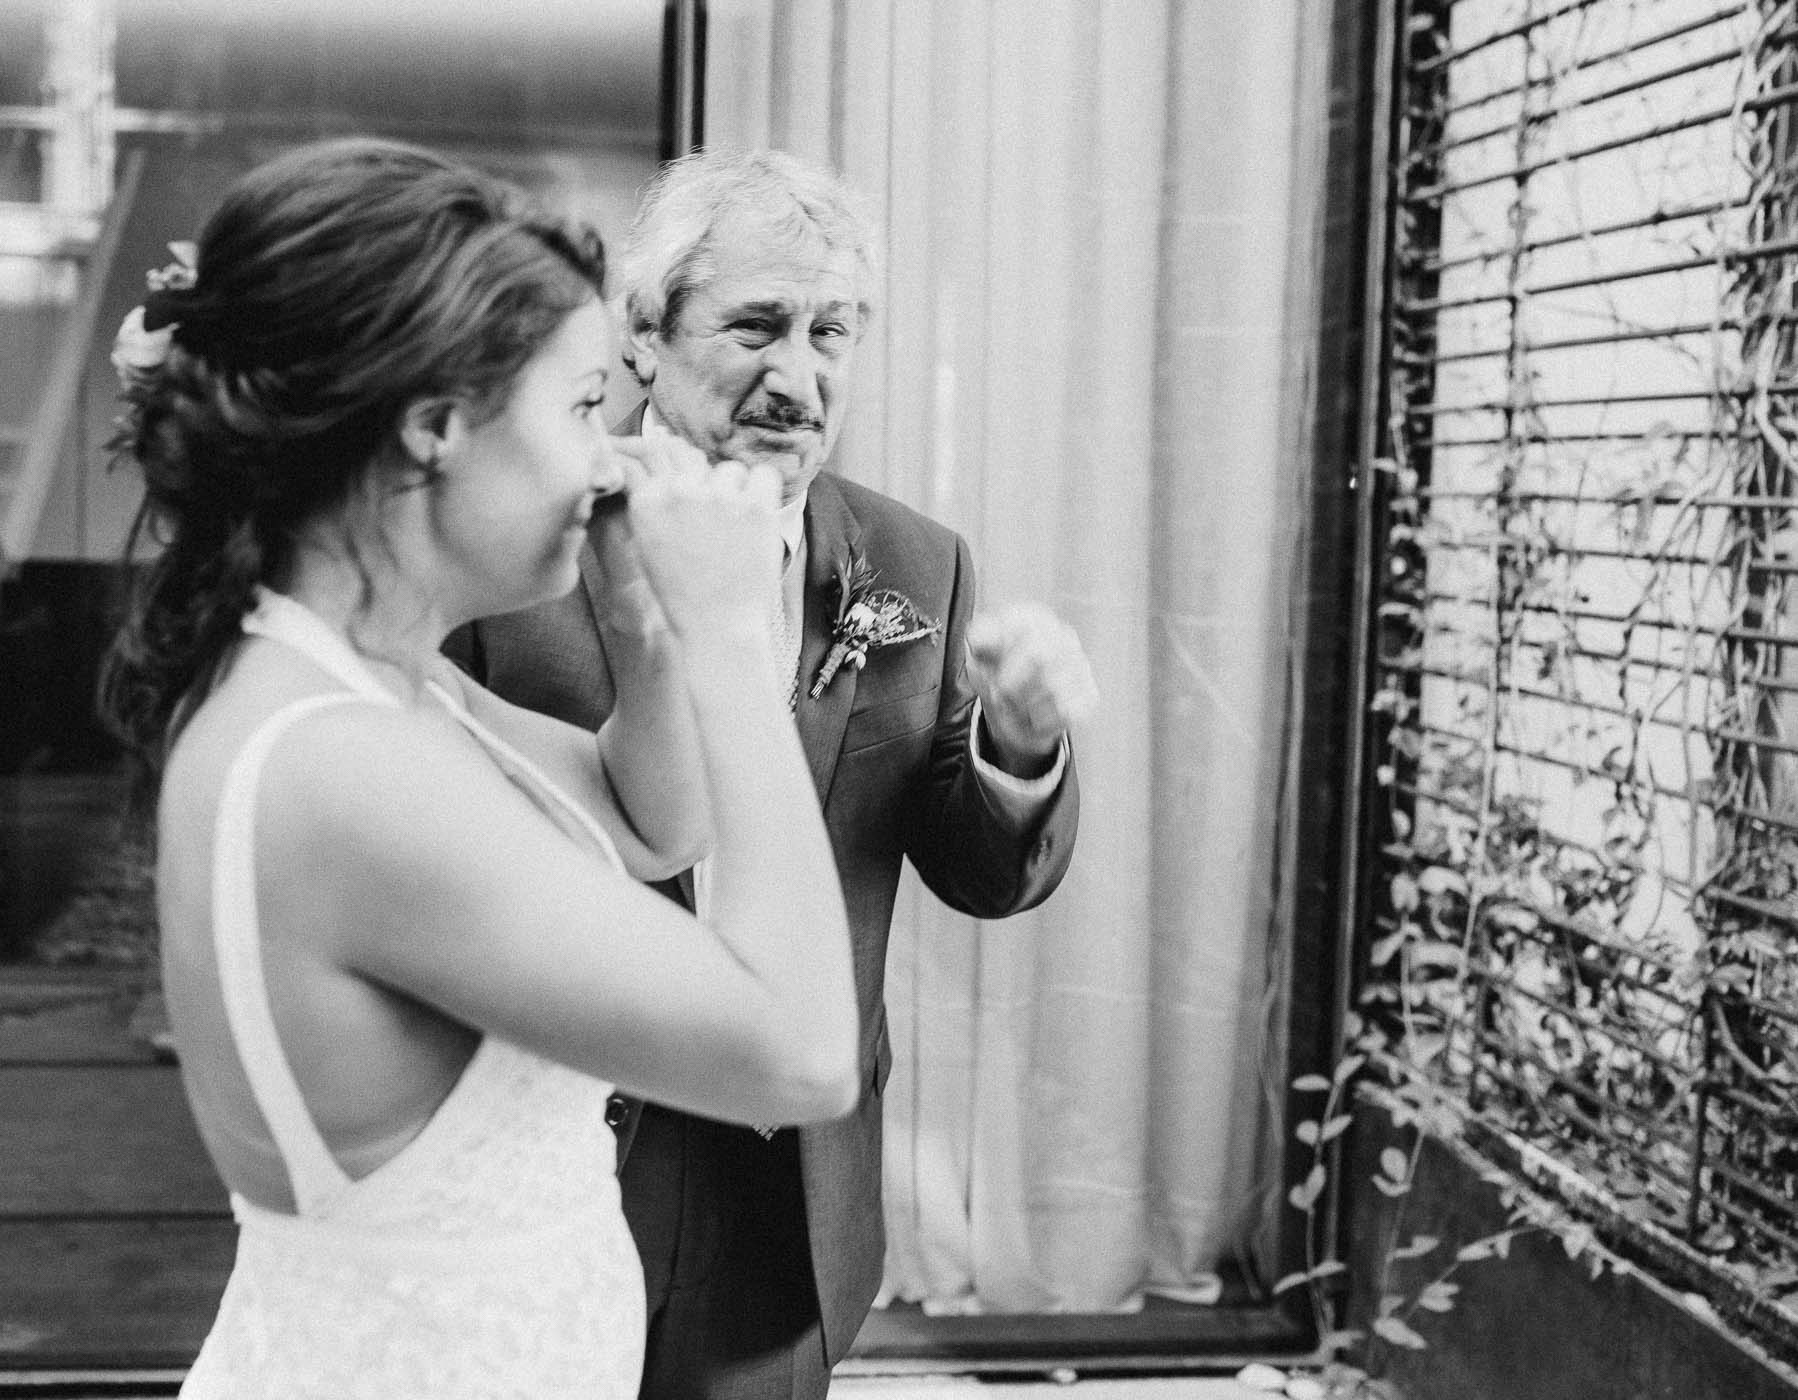 Father and daughter crying on her wedding day.